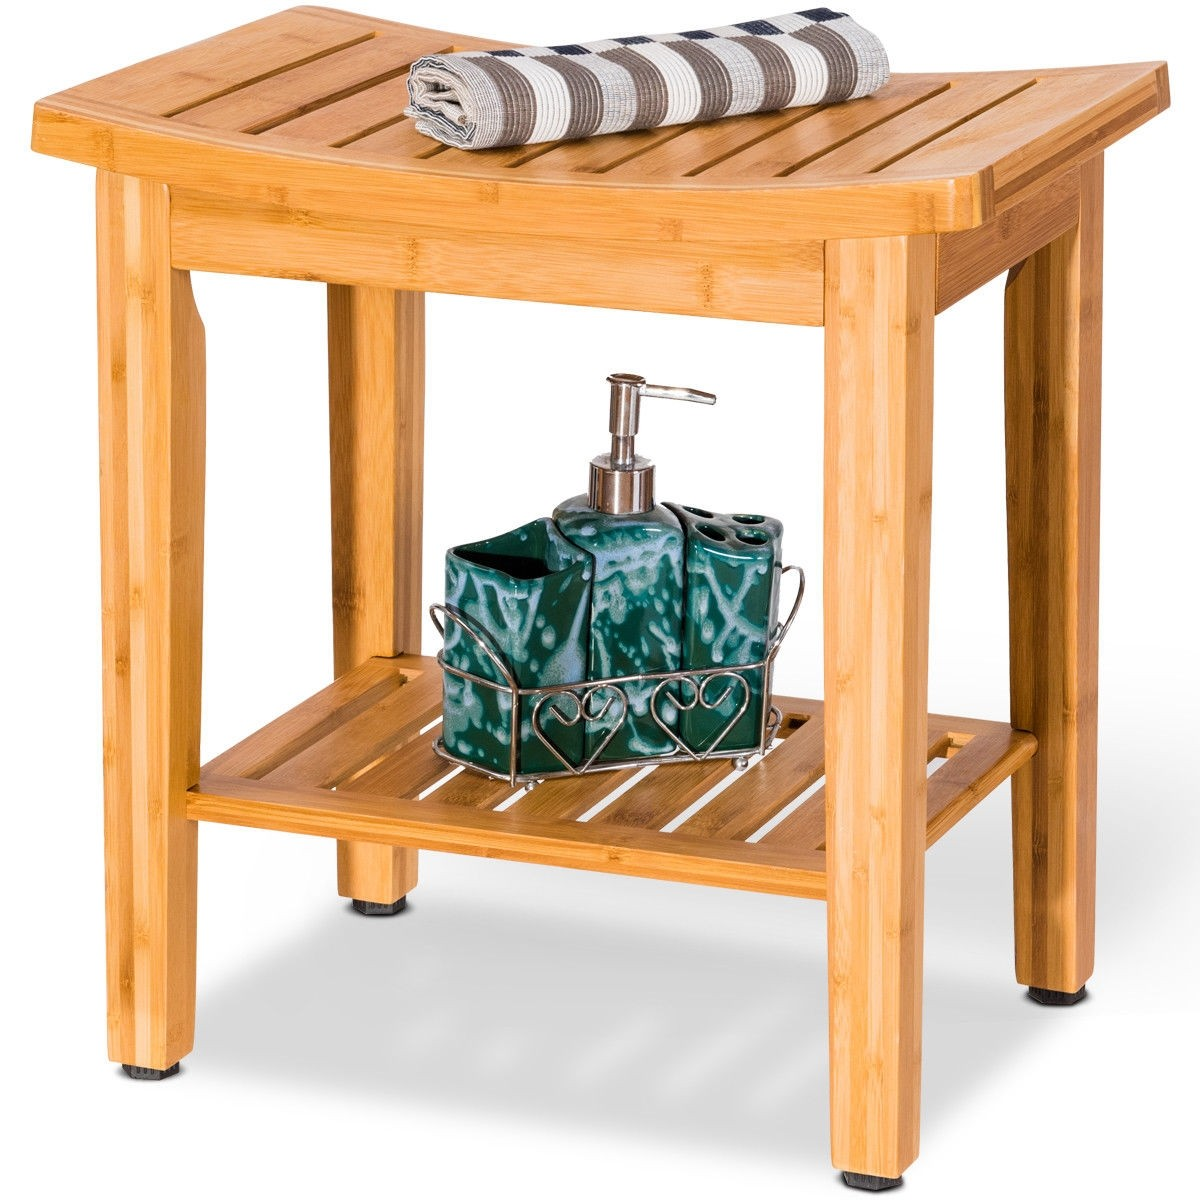 18″ Bamboo Shower Seat Bench w/ Storage Shelf – By Choice Products